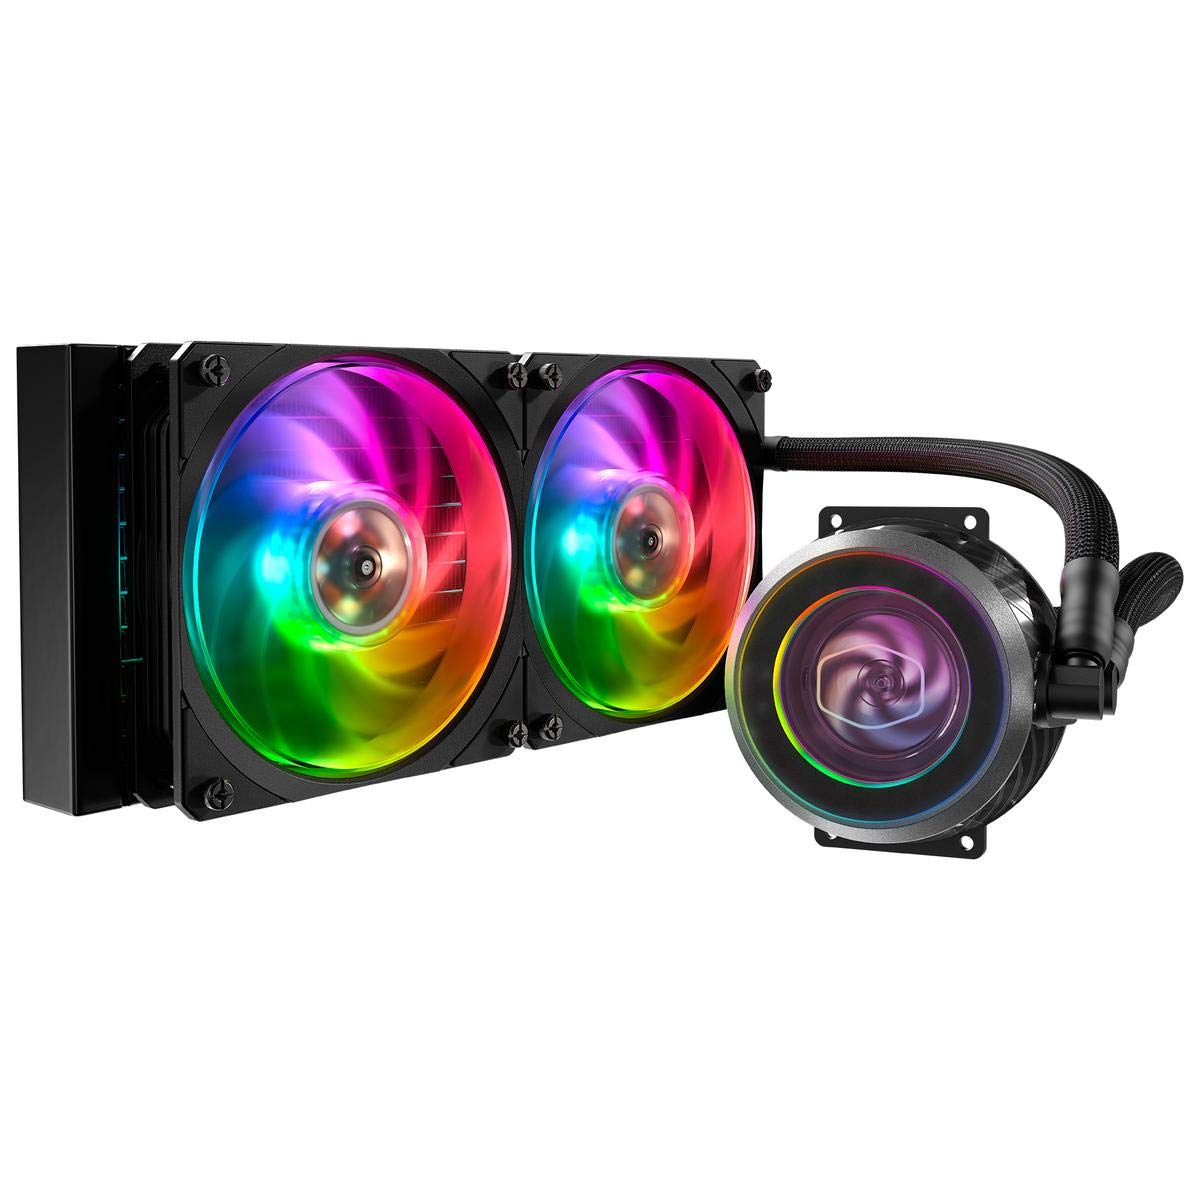 Cooler Master MasterLiquid ML240P Mirage Addressable RGB Close-Loop CPU Liquid Cooler, Transparent Pump, 24 Independently-Controlled LEDs, Dual 120mm Square Fan w/Outer-Ring Connecting Fan Blades by Cooler Master